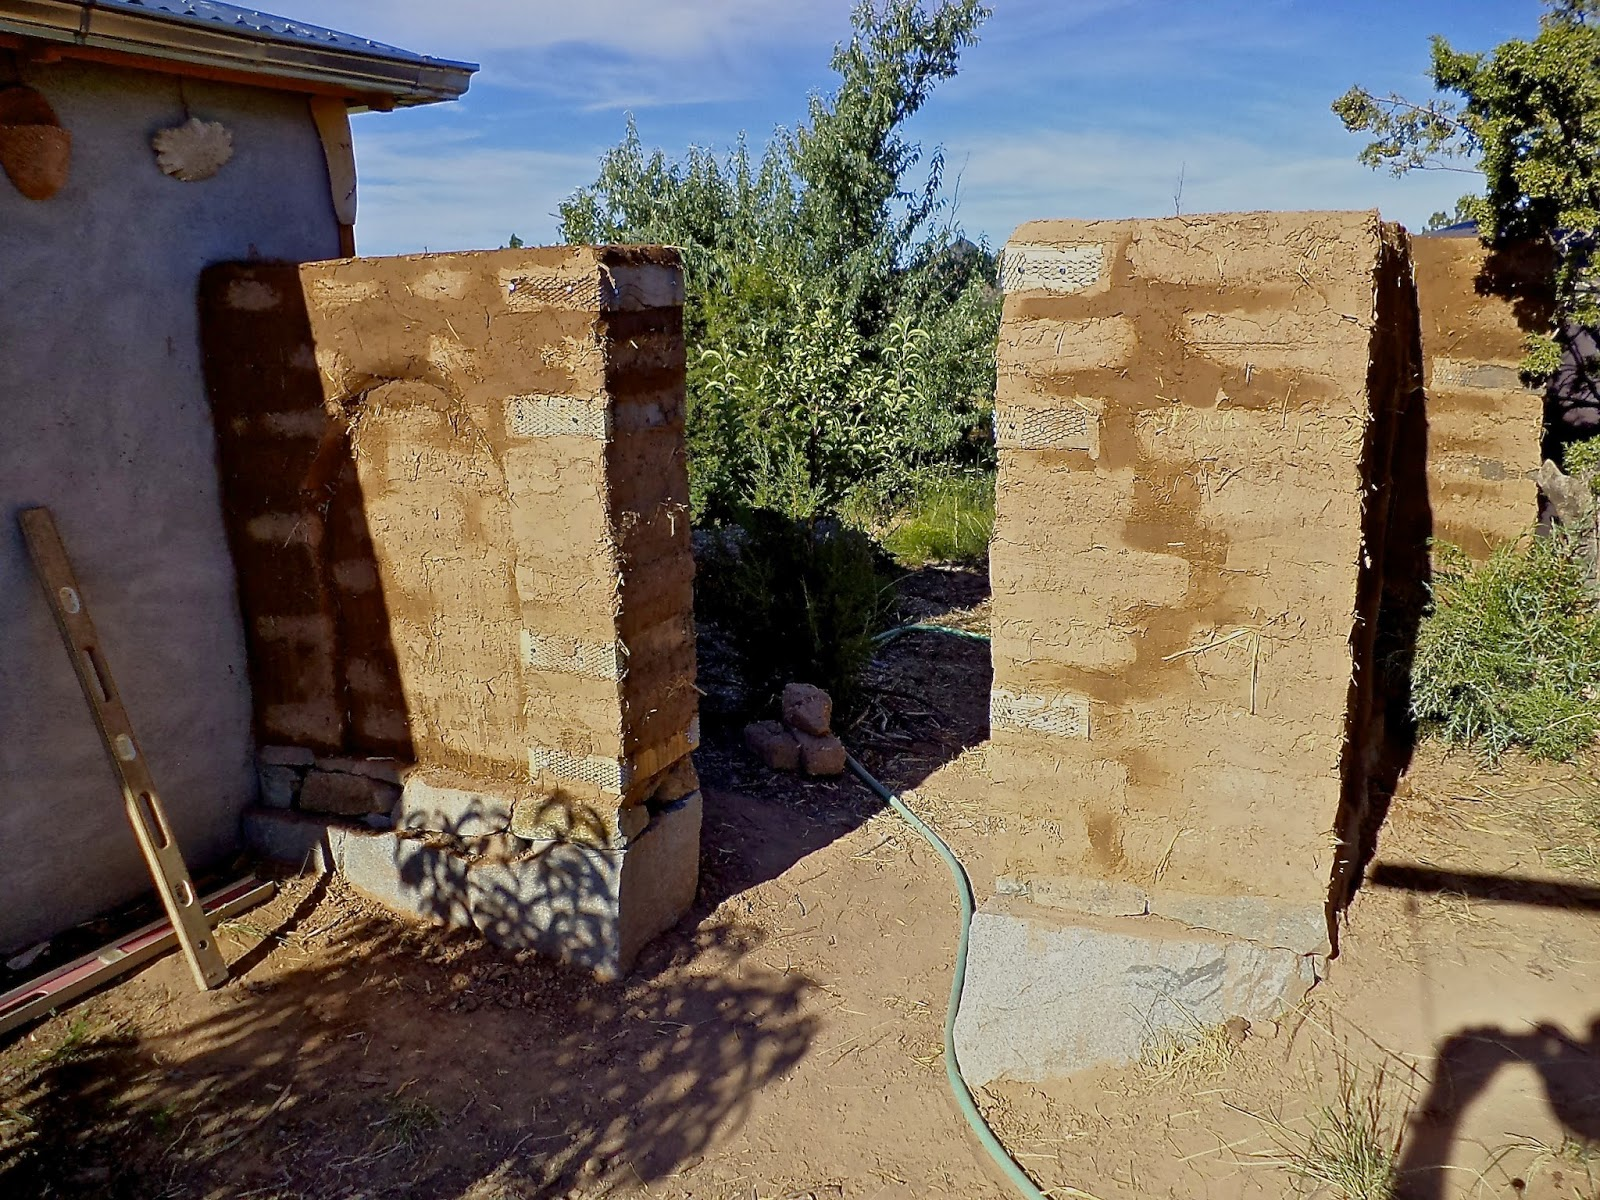 Building An Adobe Wall: #6 Plastering And Creating The Designs